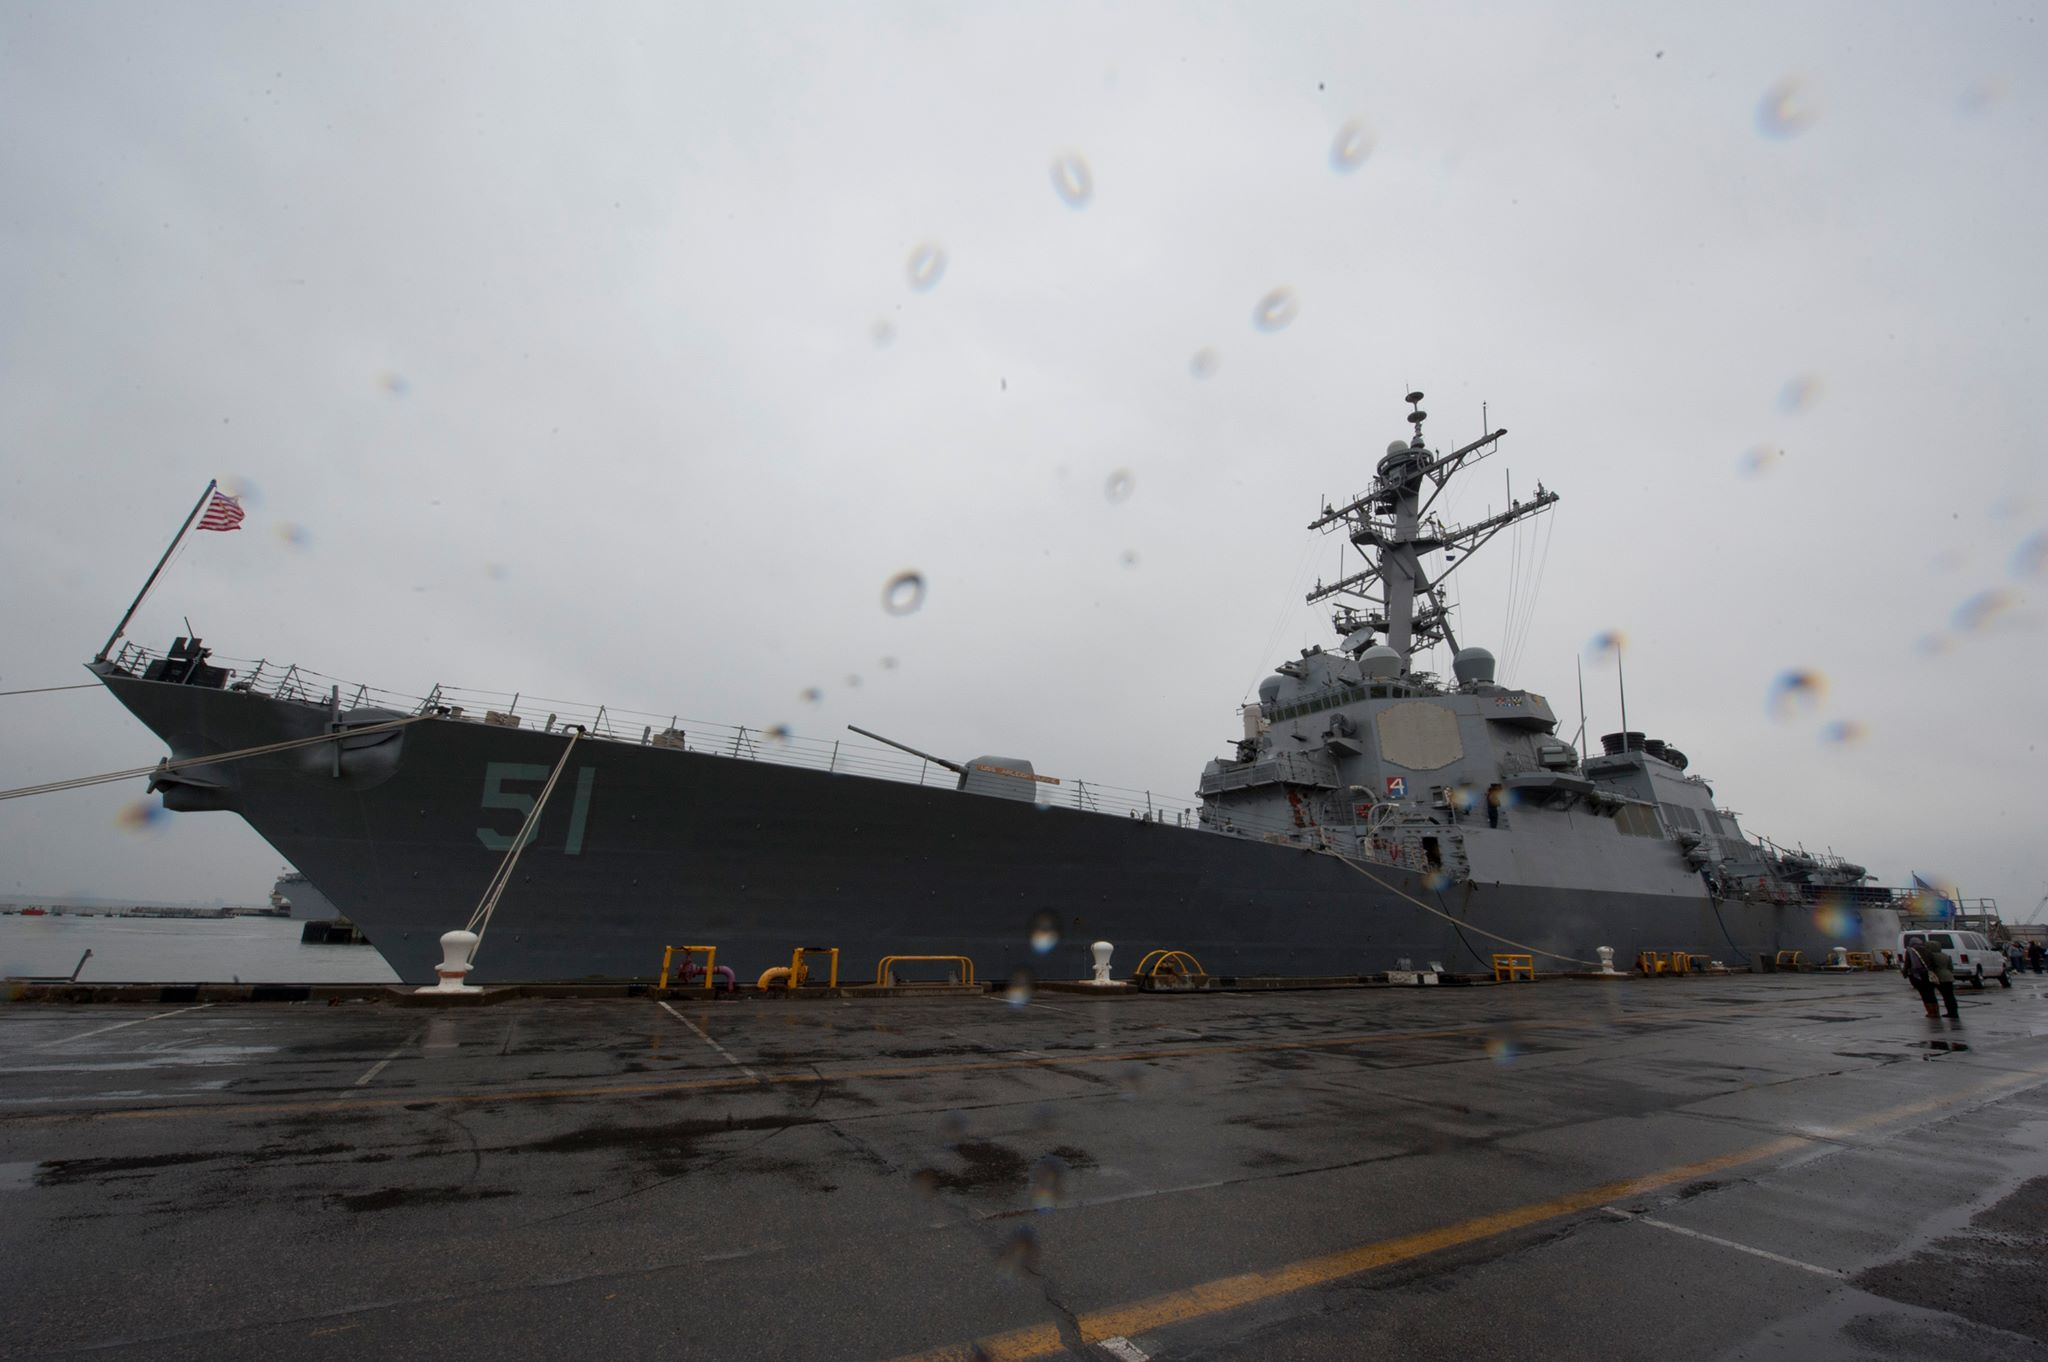 USS ARLEIGH BURKE DDG-51 am 15.02.2014 in Norfolk Bild: USS ARLEIGH BURKE Facebook page